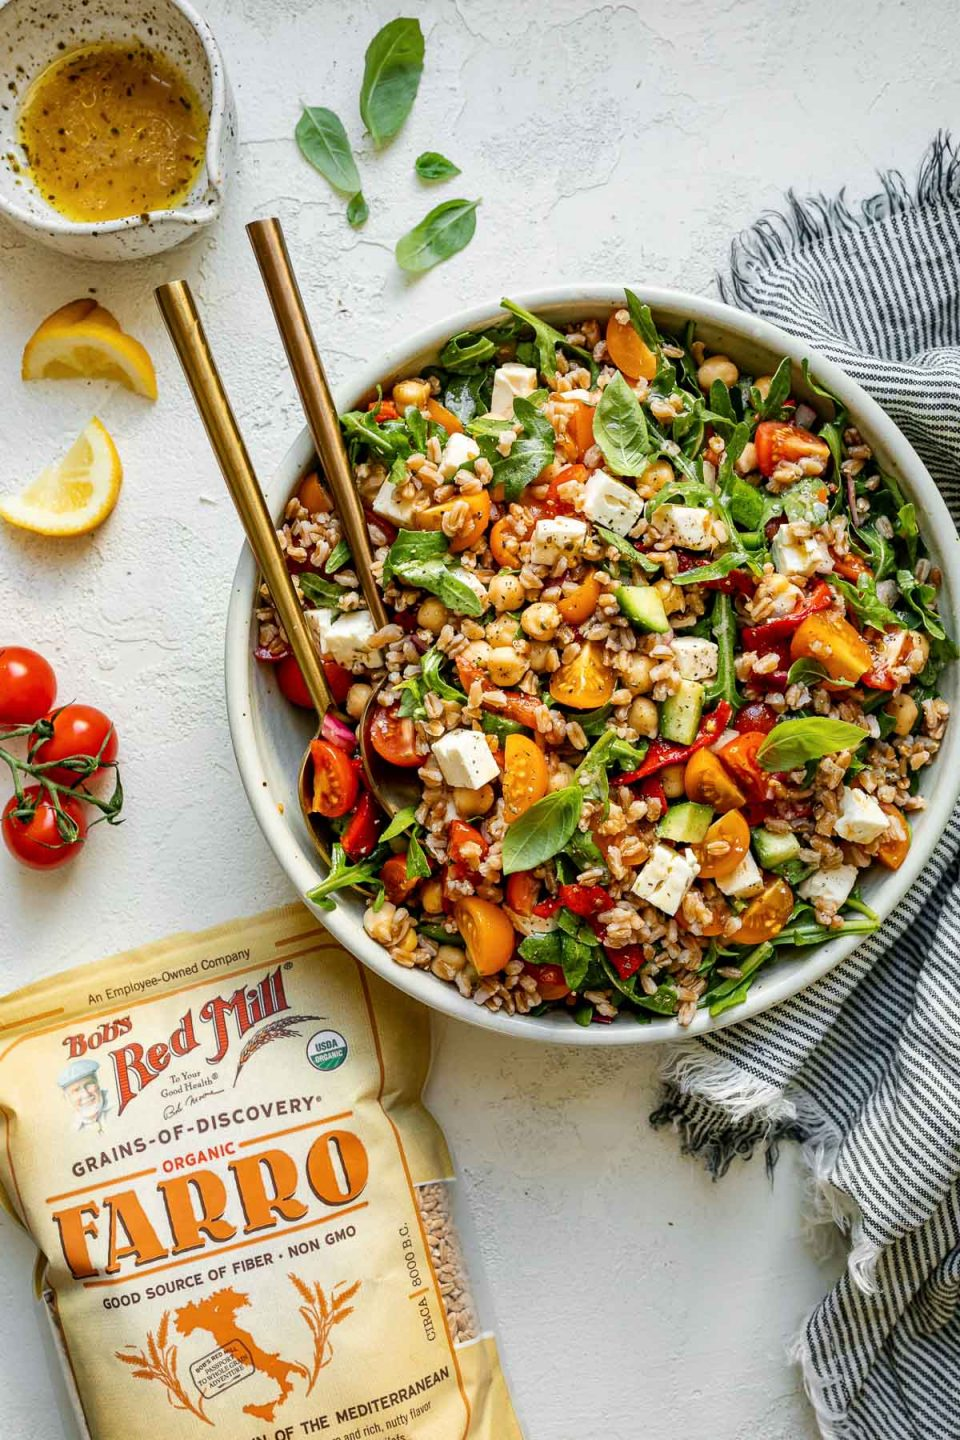 Greek farro salad in ceramic serving dish atop a white surface. The farro salad is tossed & topped with fresh basil leaves. The bowl is surrounded by a striped gray linen napkin, lemon wedges, tomatoes, & a bag of Bob's Red Mill farro.